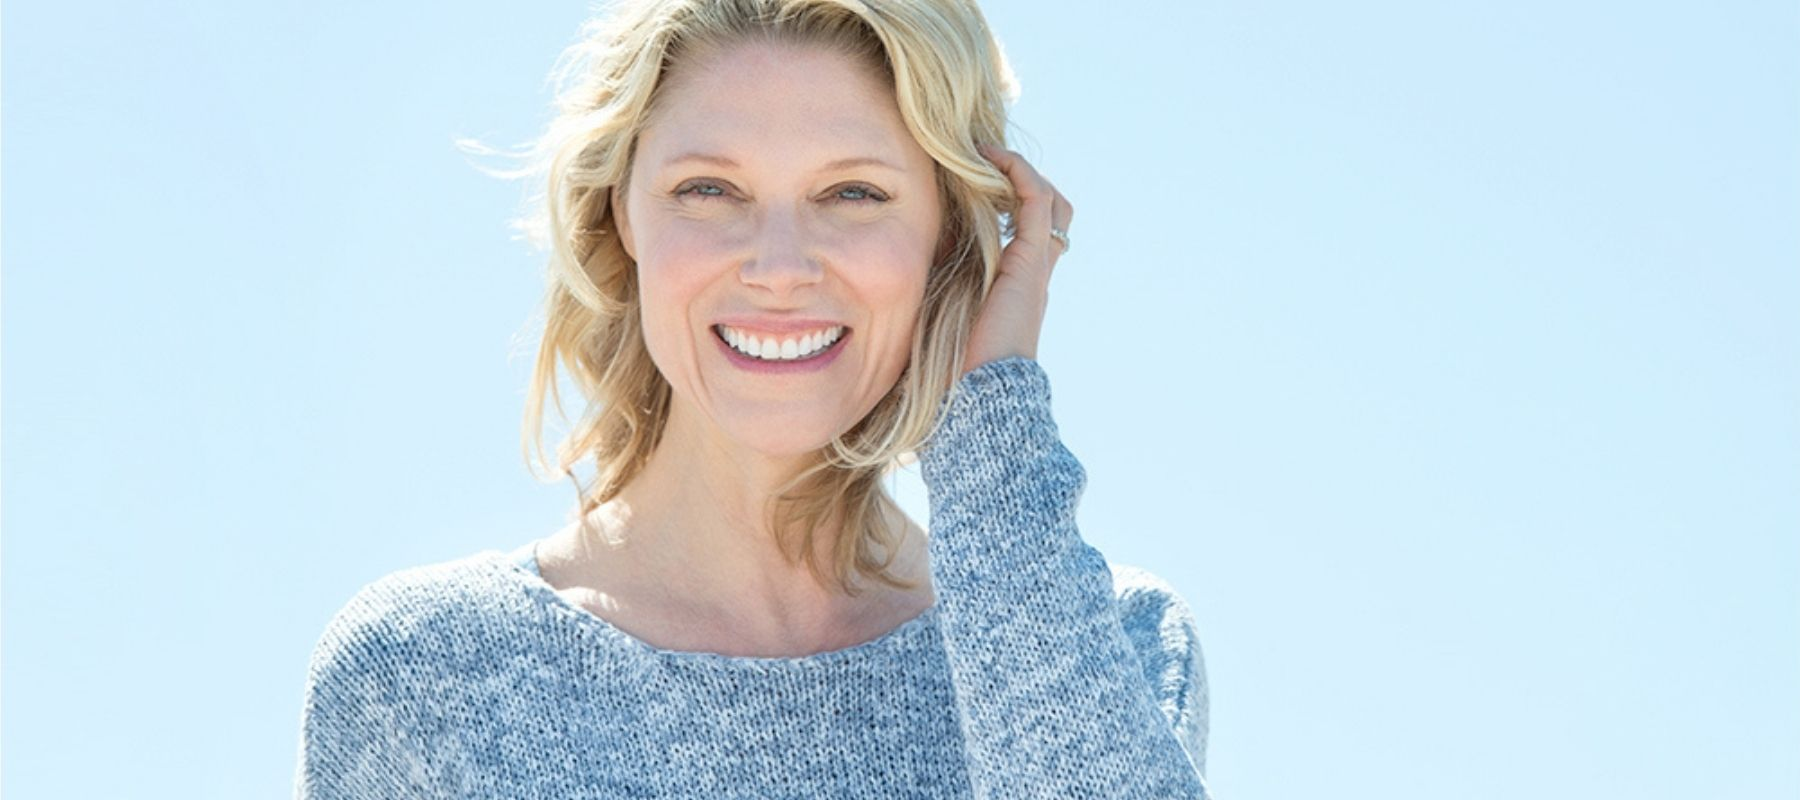 5 Pro-Age beauty tips to embrace the real you